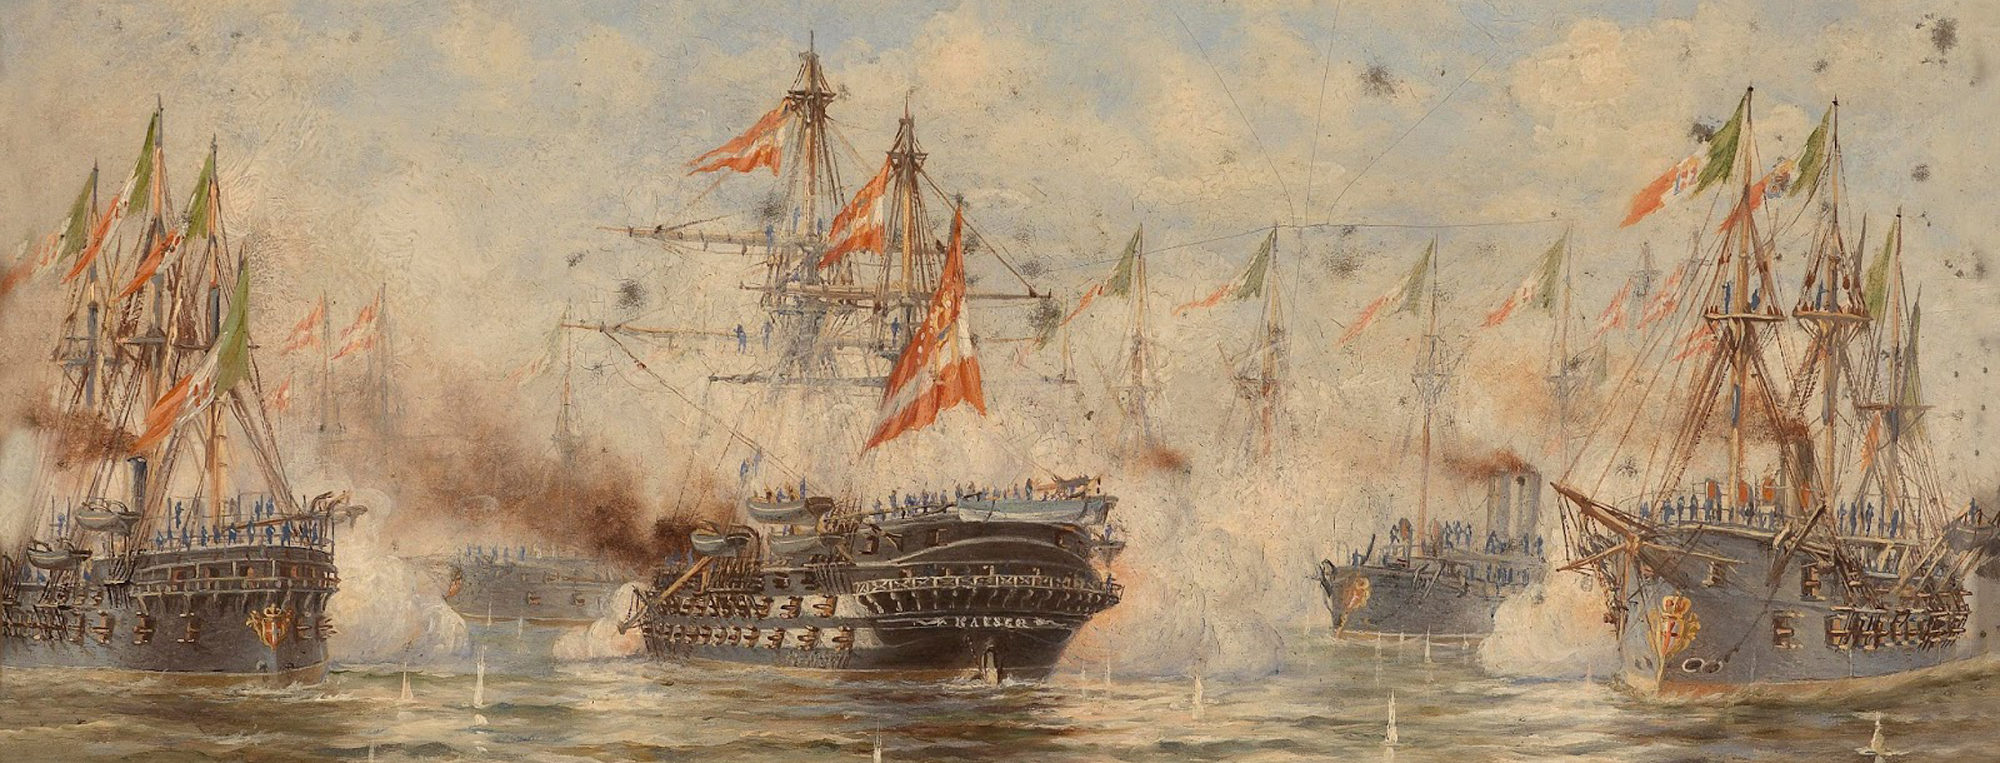 BG battle of lissa 1870s fleets